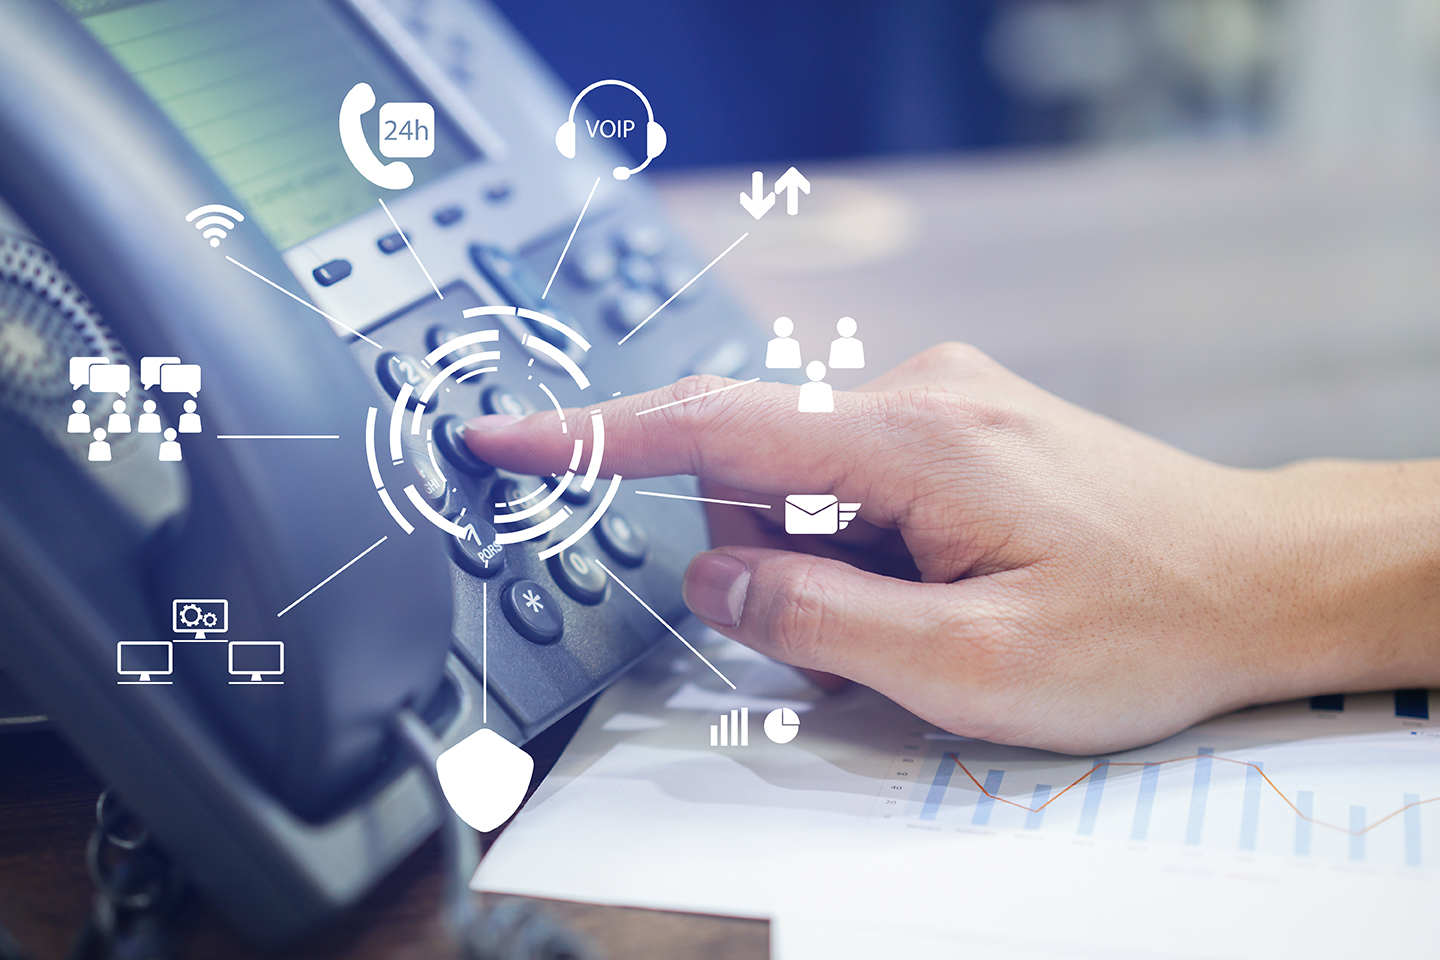 VoIP is rapidly becoming a popular alternative to traditional telephone service.